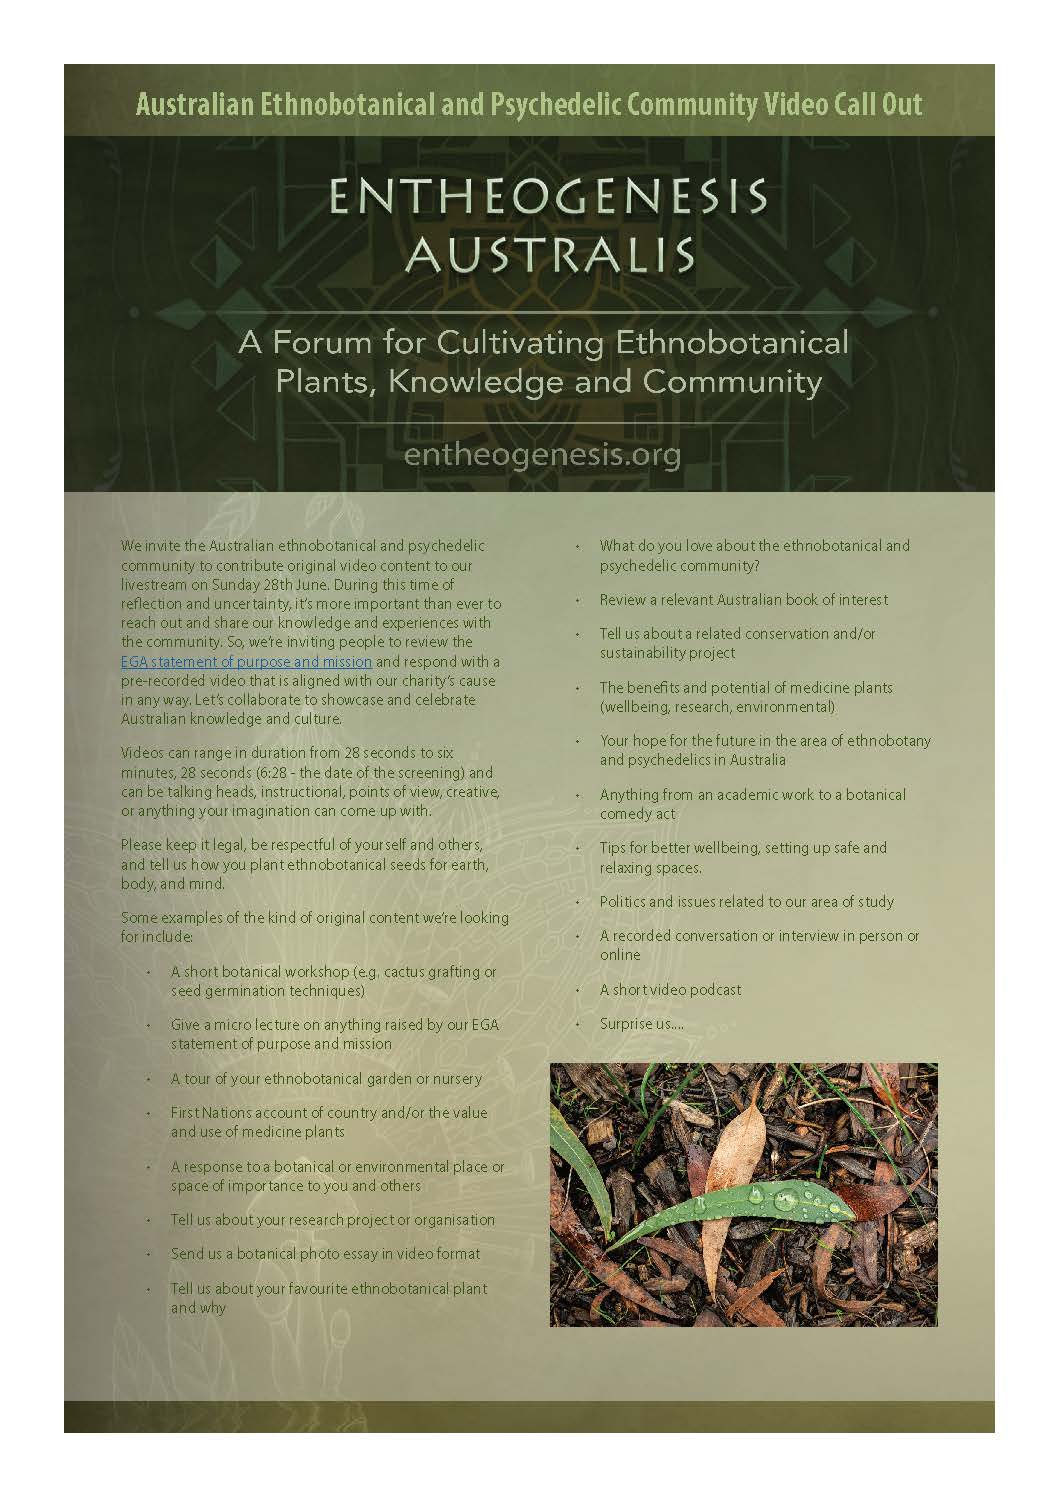 Australian Ethnobotanical and Psychedelic Community Video Call Out